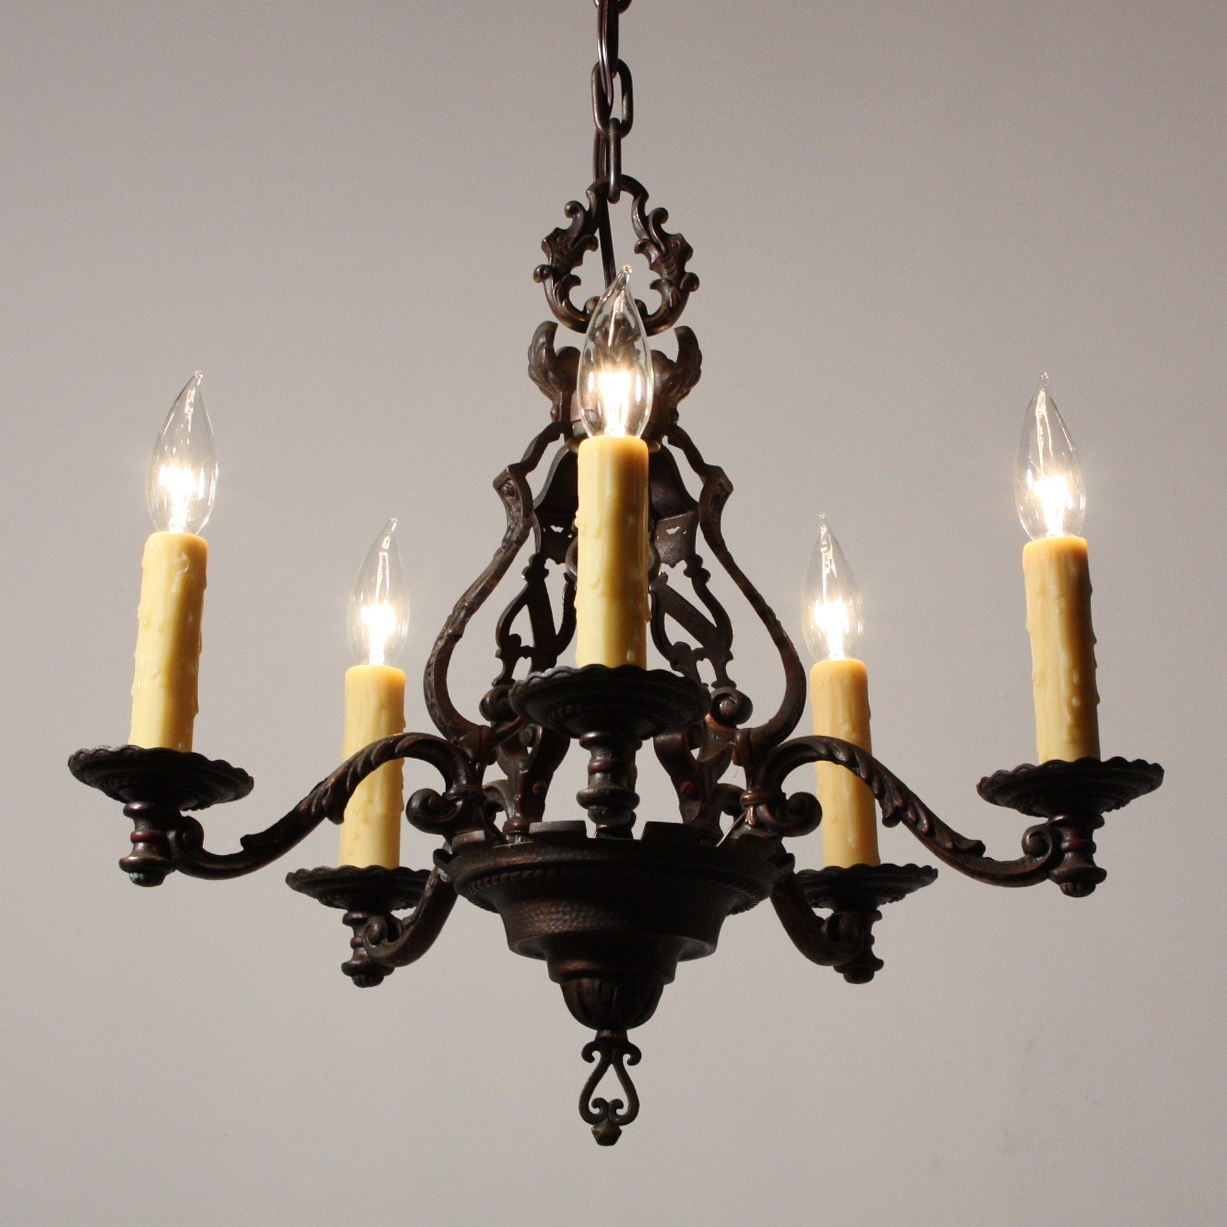 Featured Image of Cast Iron Antique Chandelier